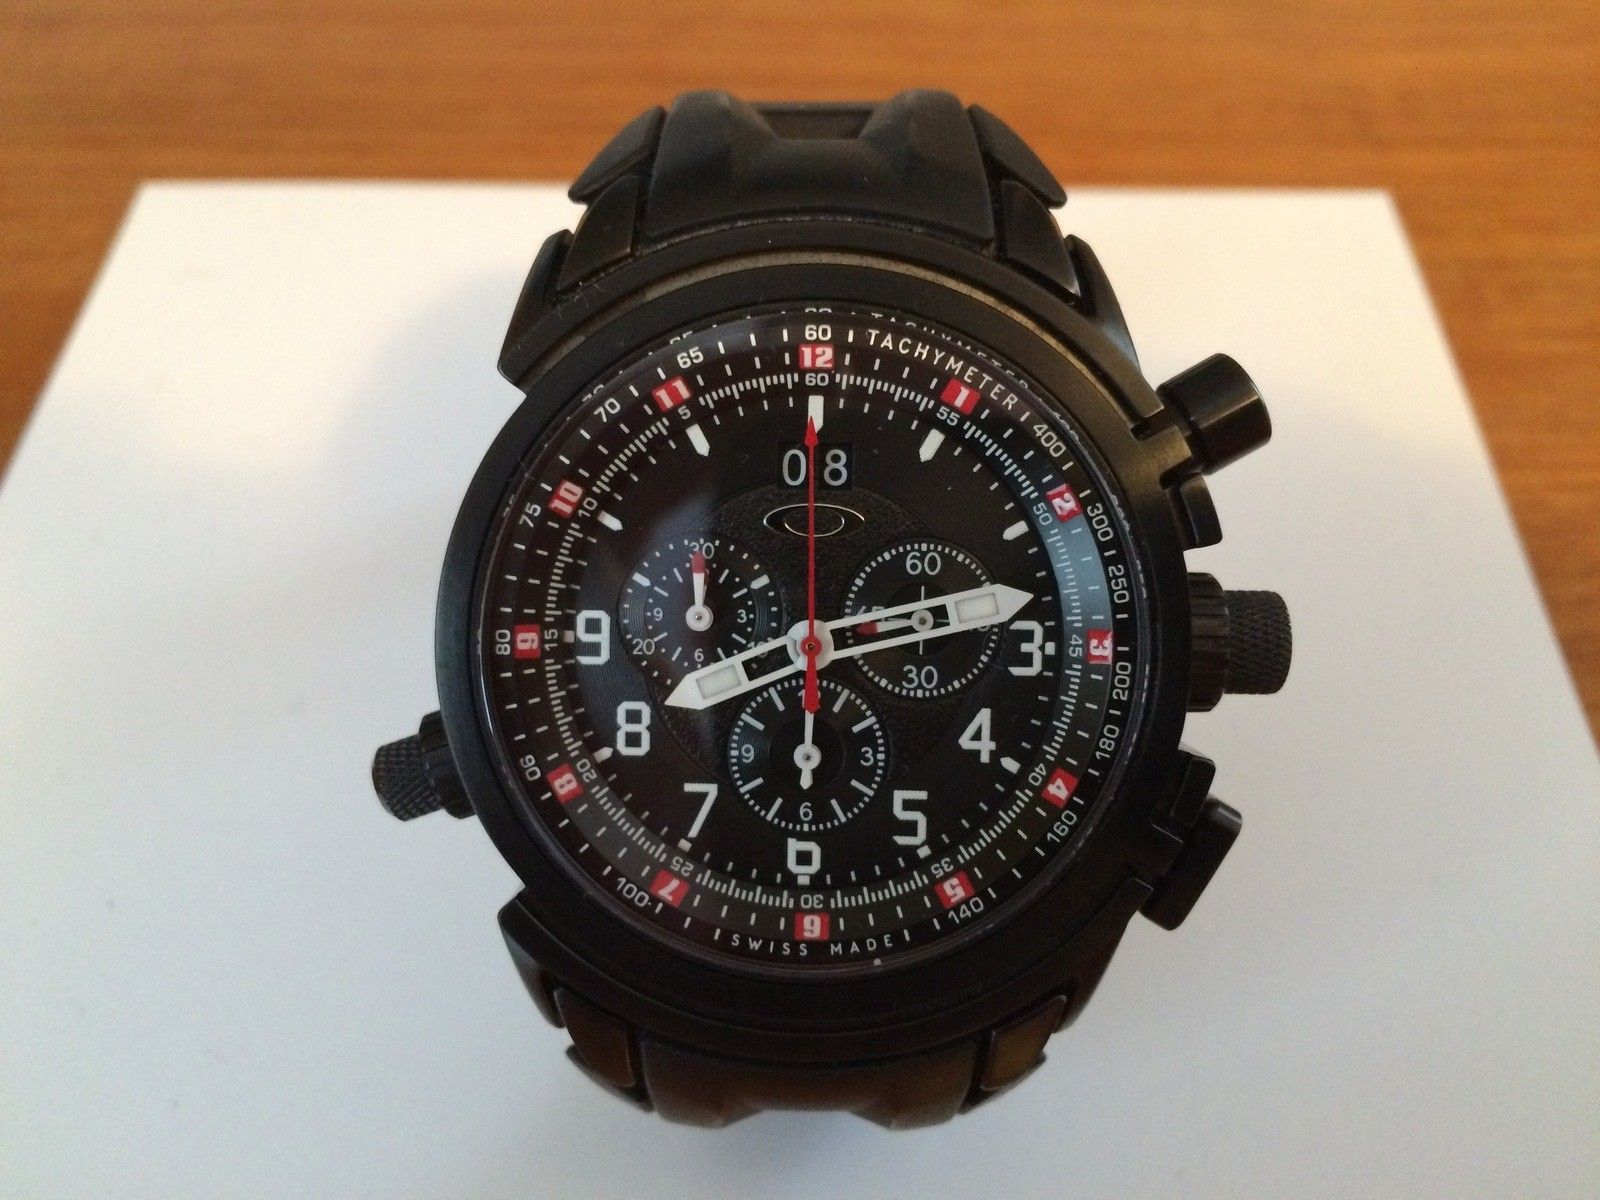 Stealth Black 12 Ga Watch - IMG_0101.JPG